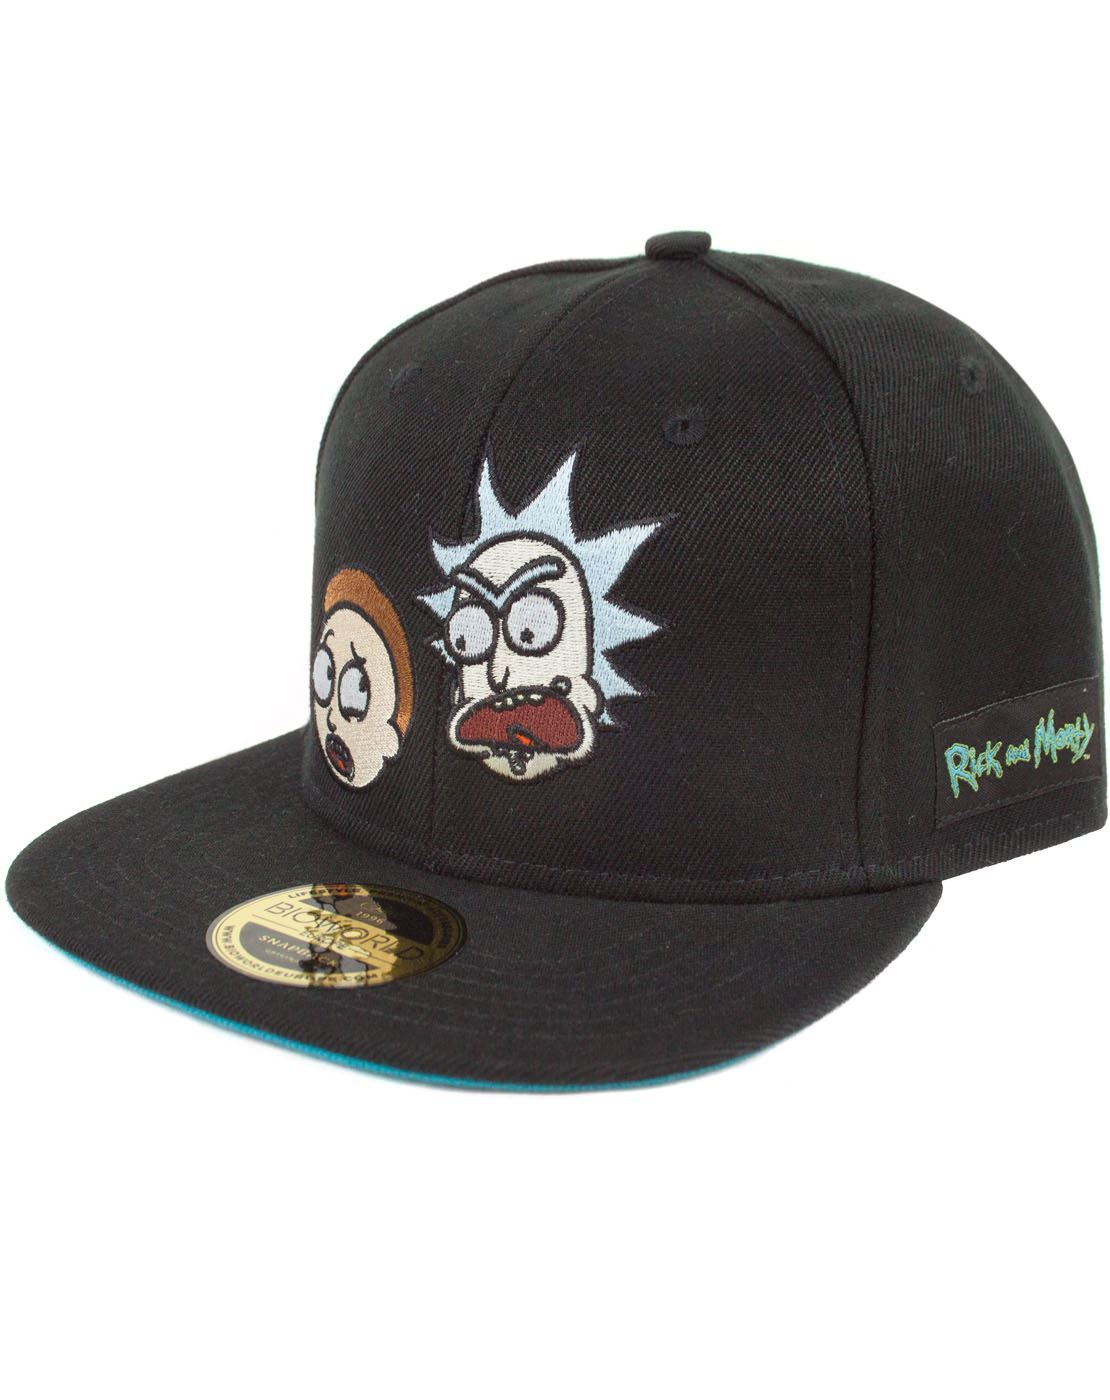 5a6a0c770a5 Rick And Morty Faces Snapback Cap – Vanilla Underground